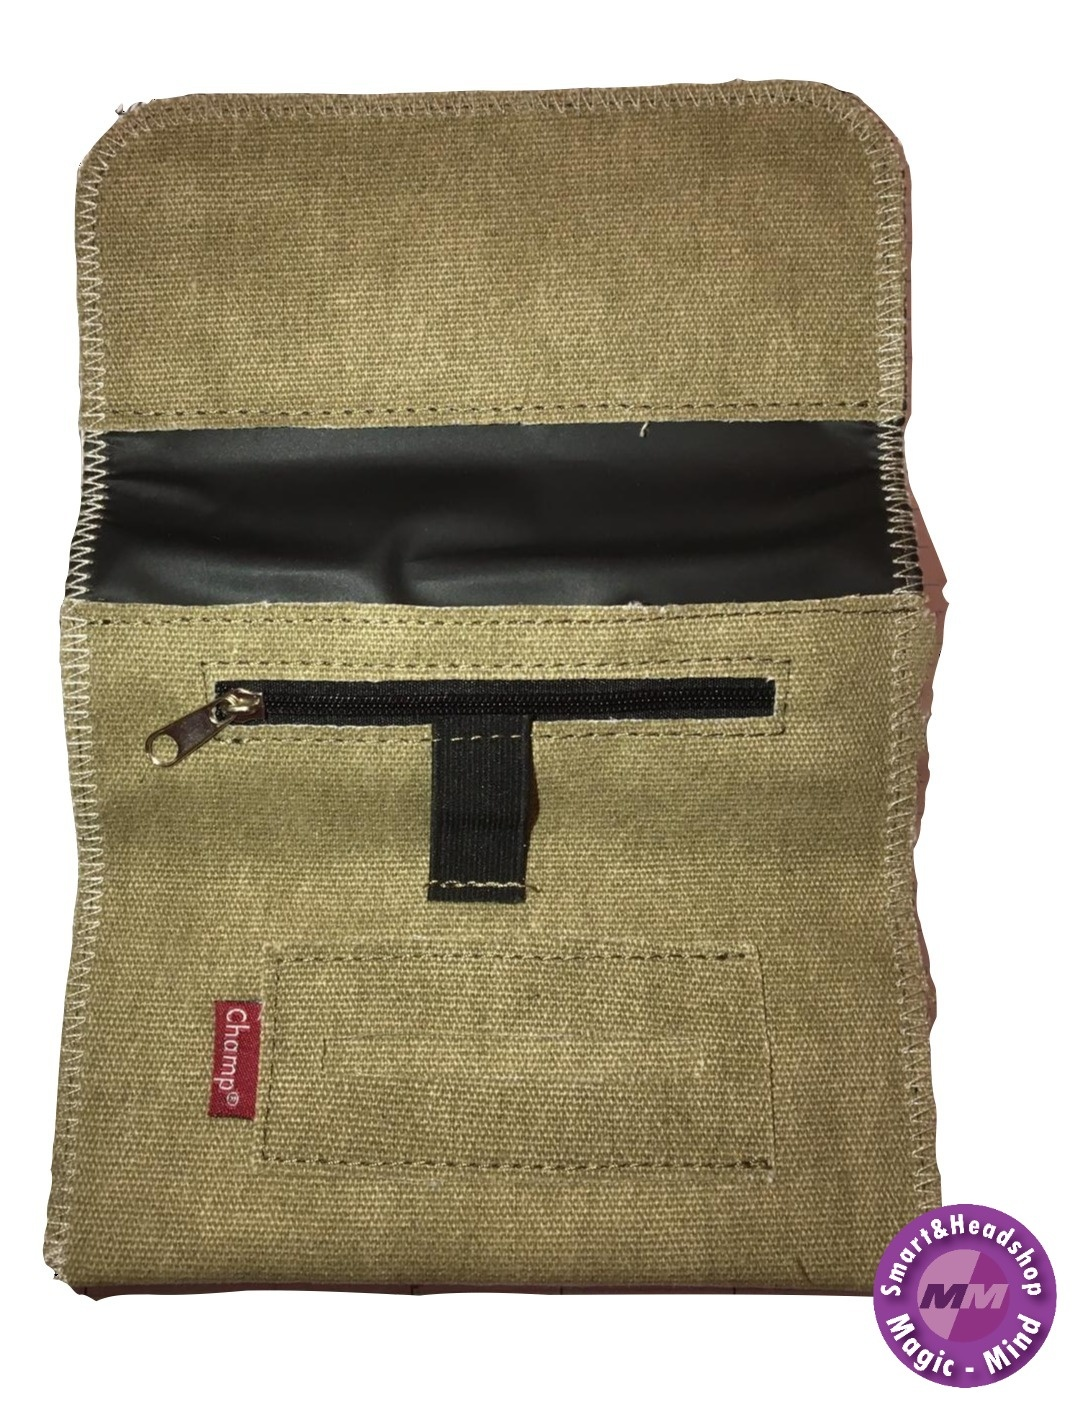 champ Champ Natural Denim Roll Up Zip Rolling Tobacco Pouch